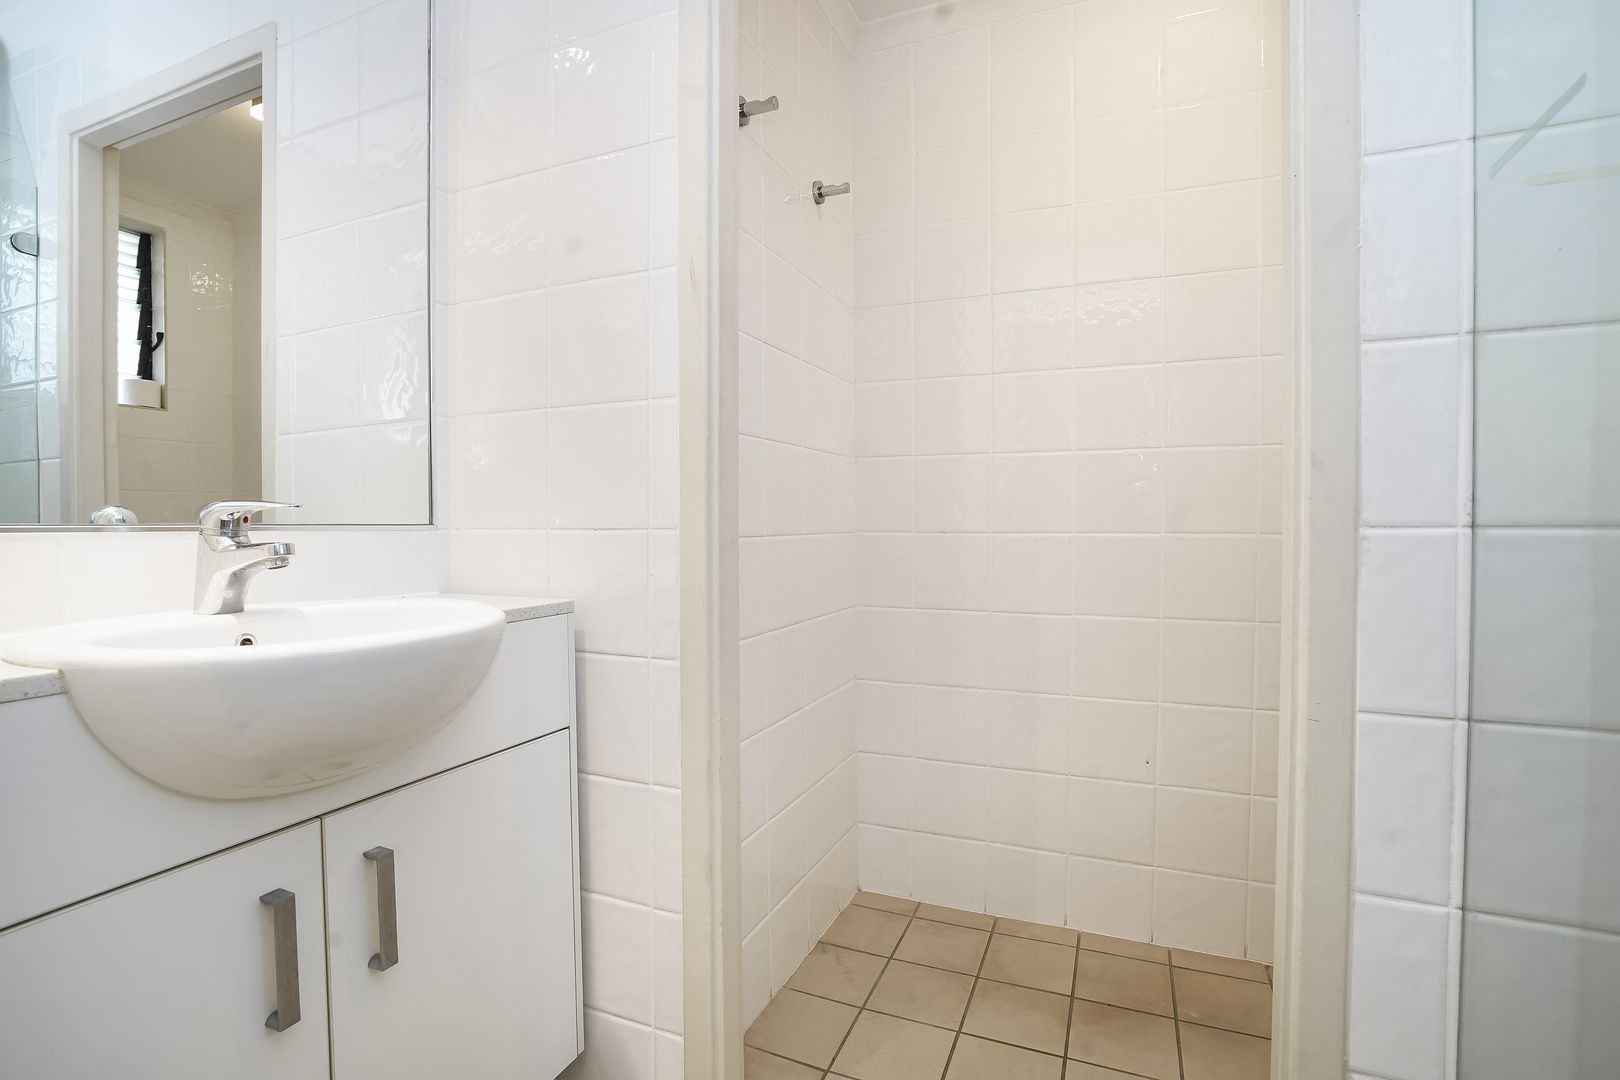 46/52 Gregory Street, Parap NT 0820, Image 2